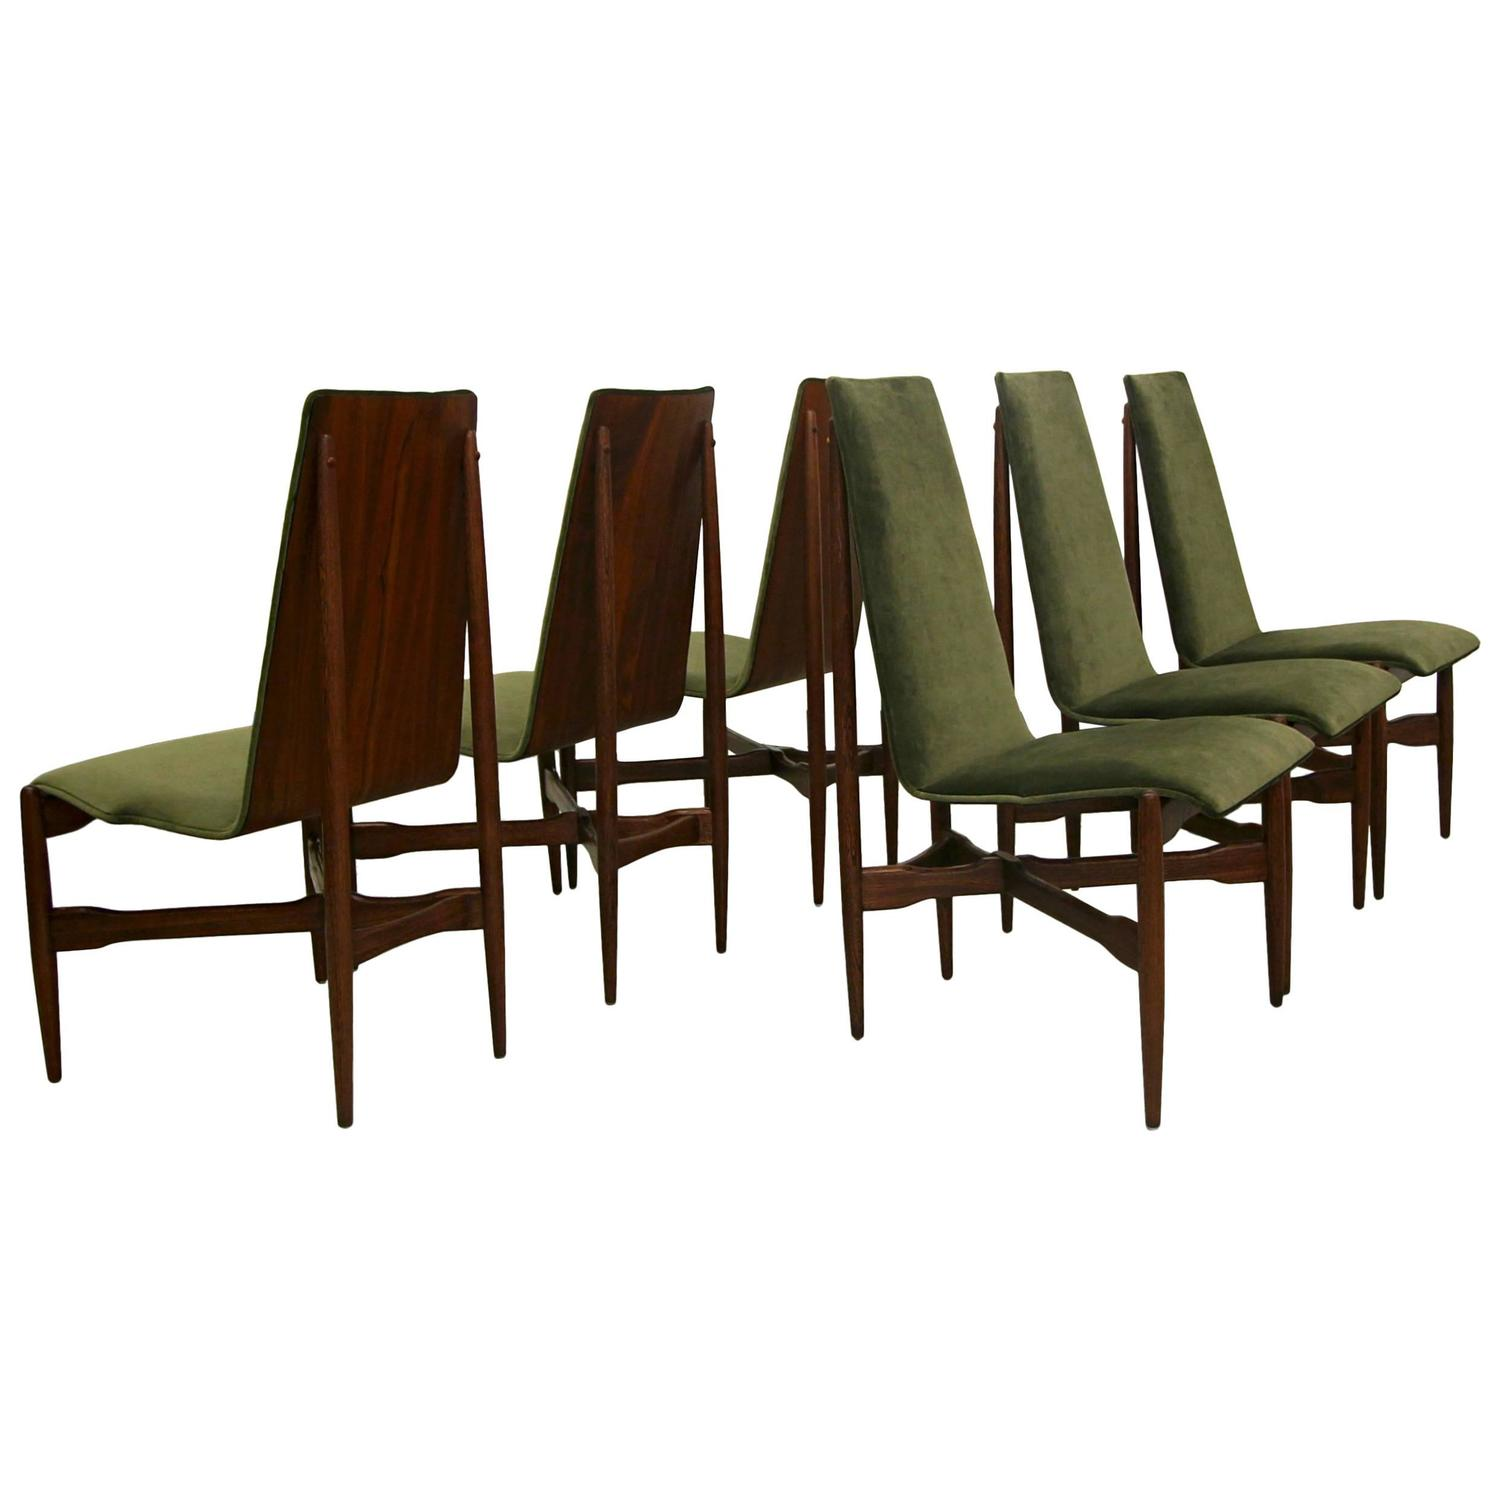 bentwood dining chair how to upholster a cushion set of six mid century chairs by kodawood